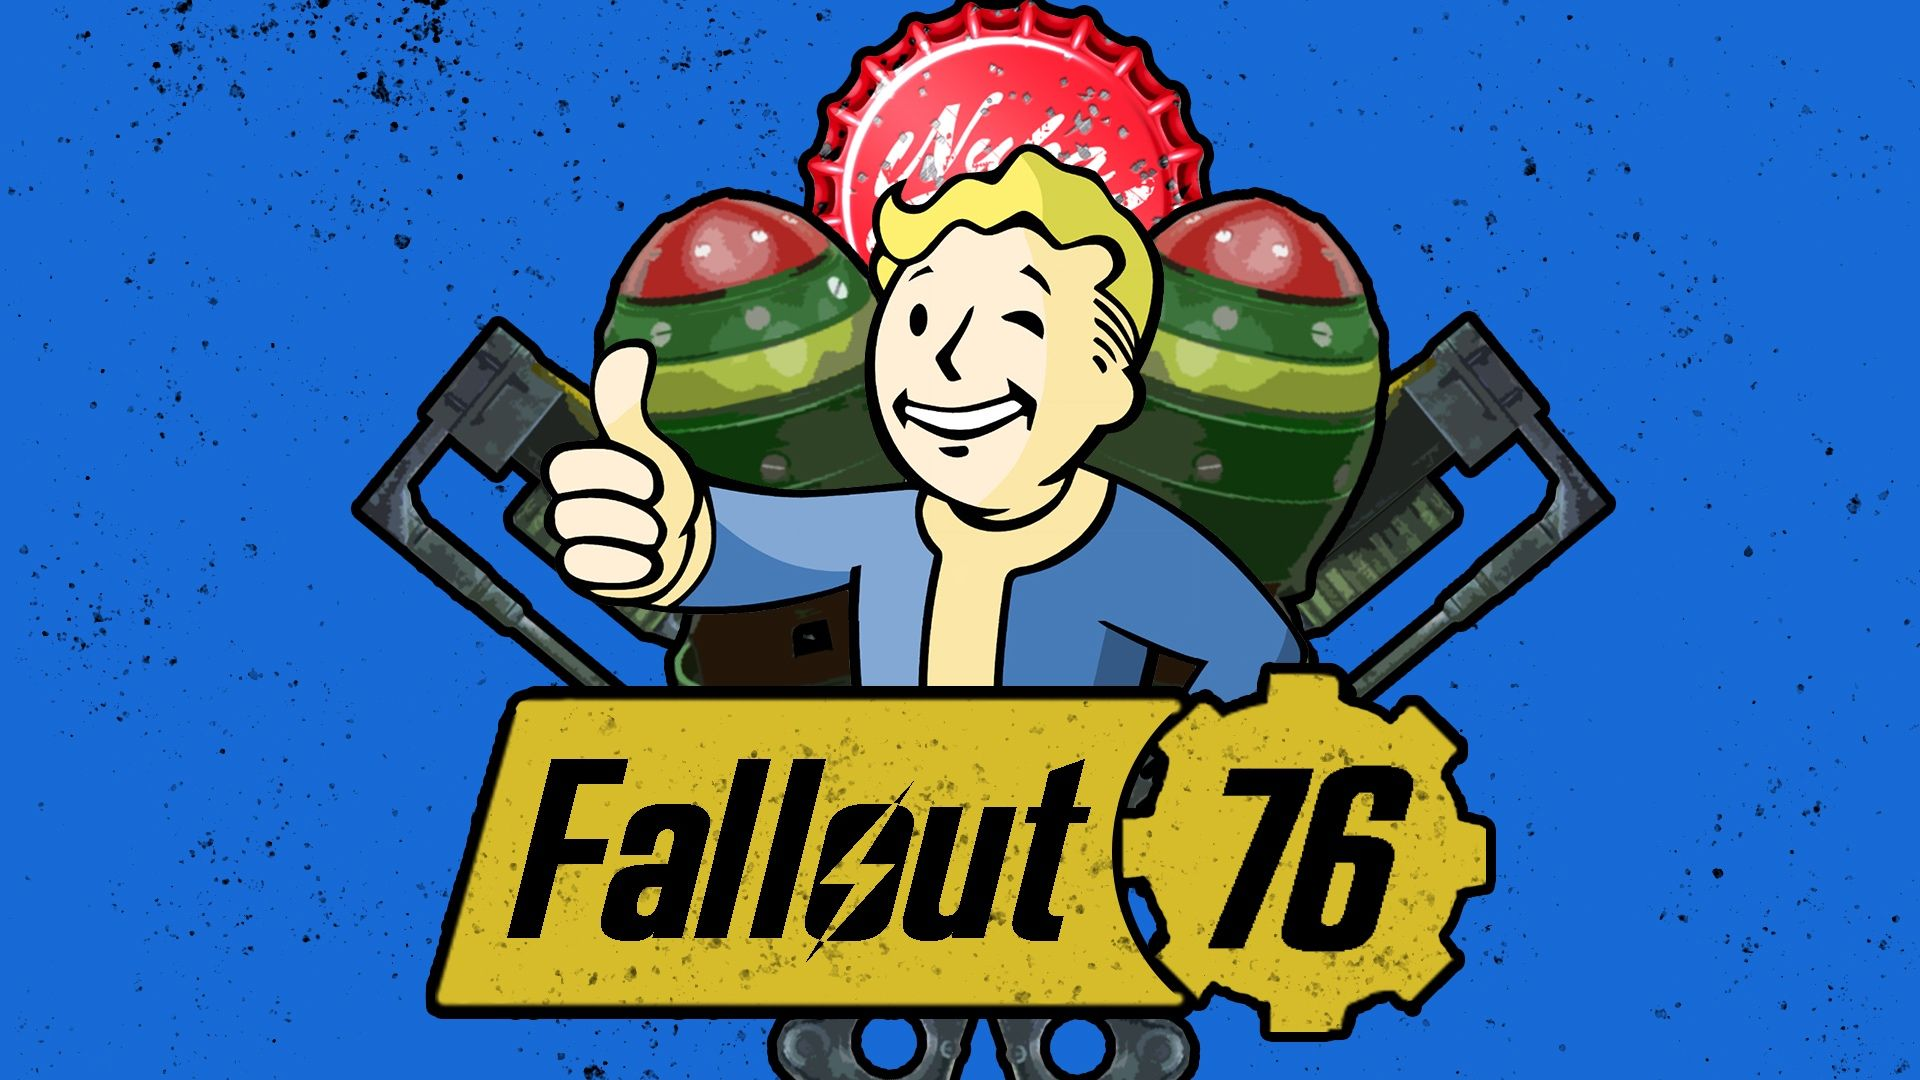 Fallout 76 Wallpapers - Top Free Fallout 76 Backgrounds ...